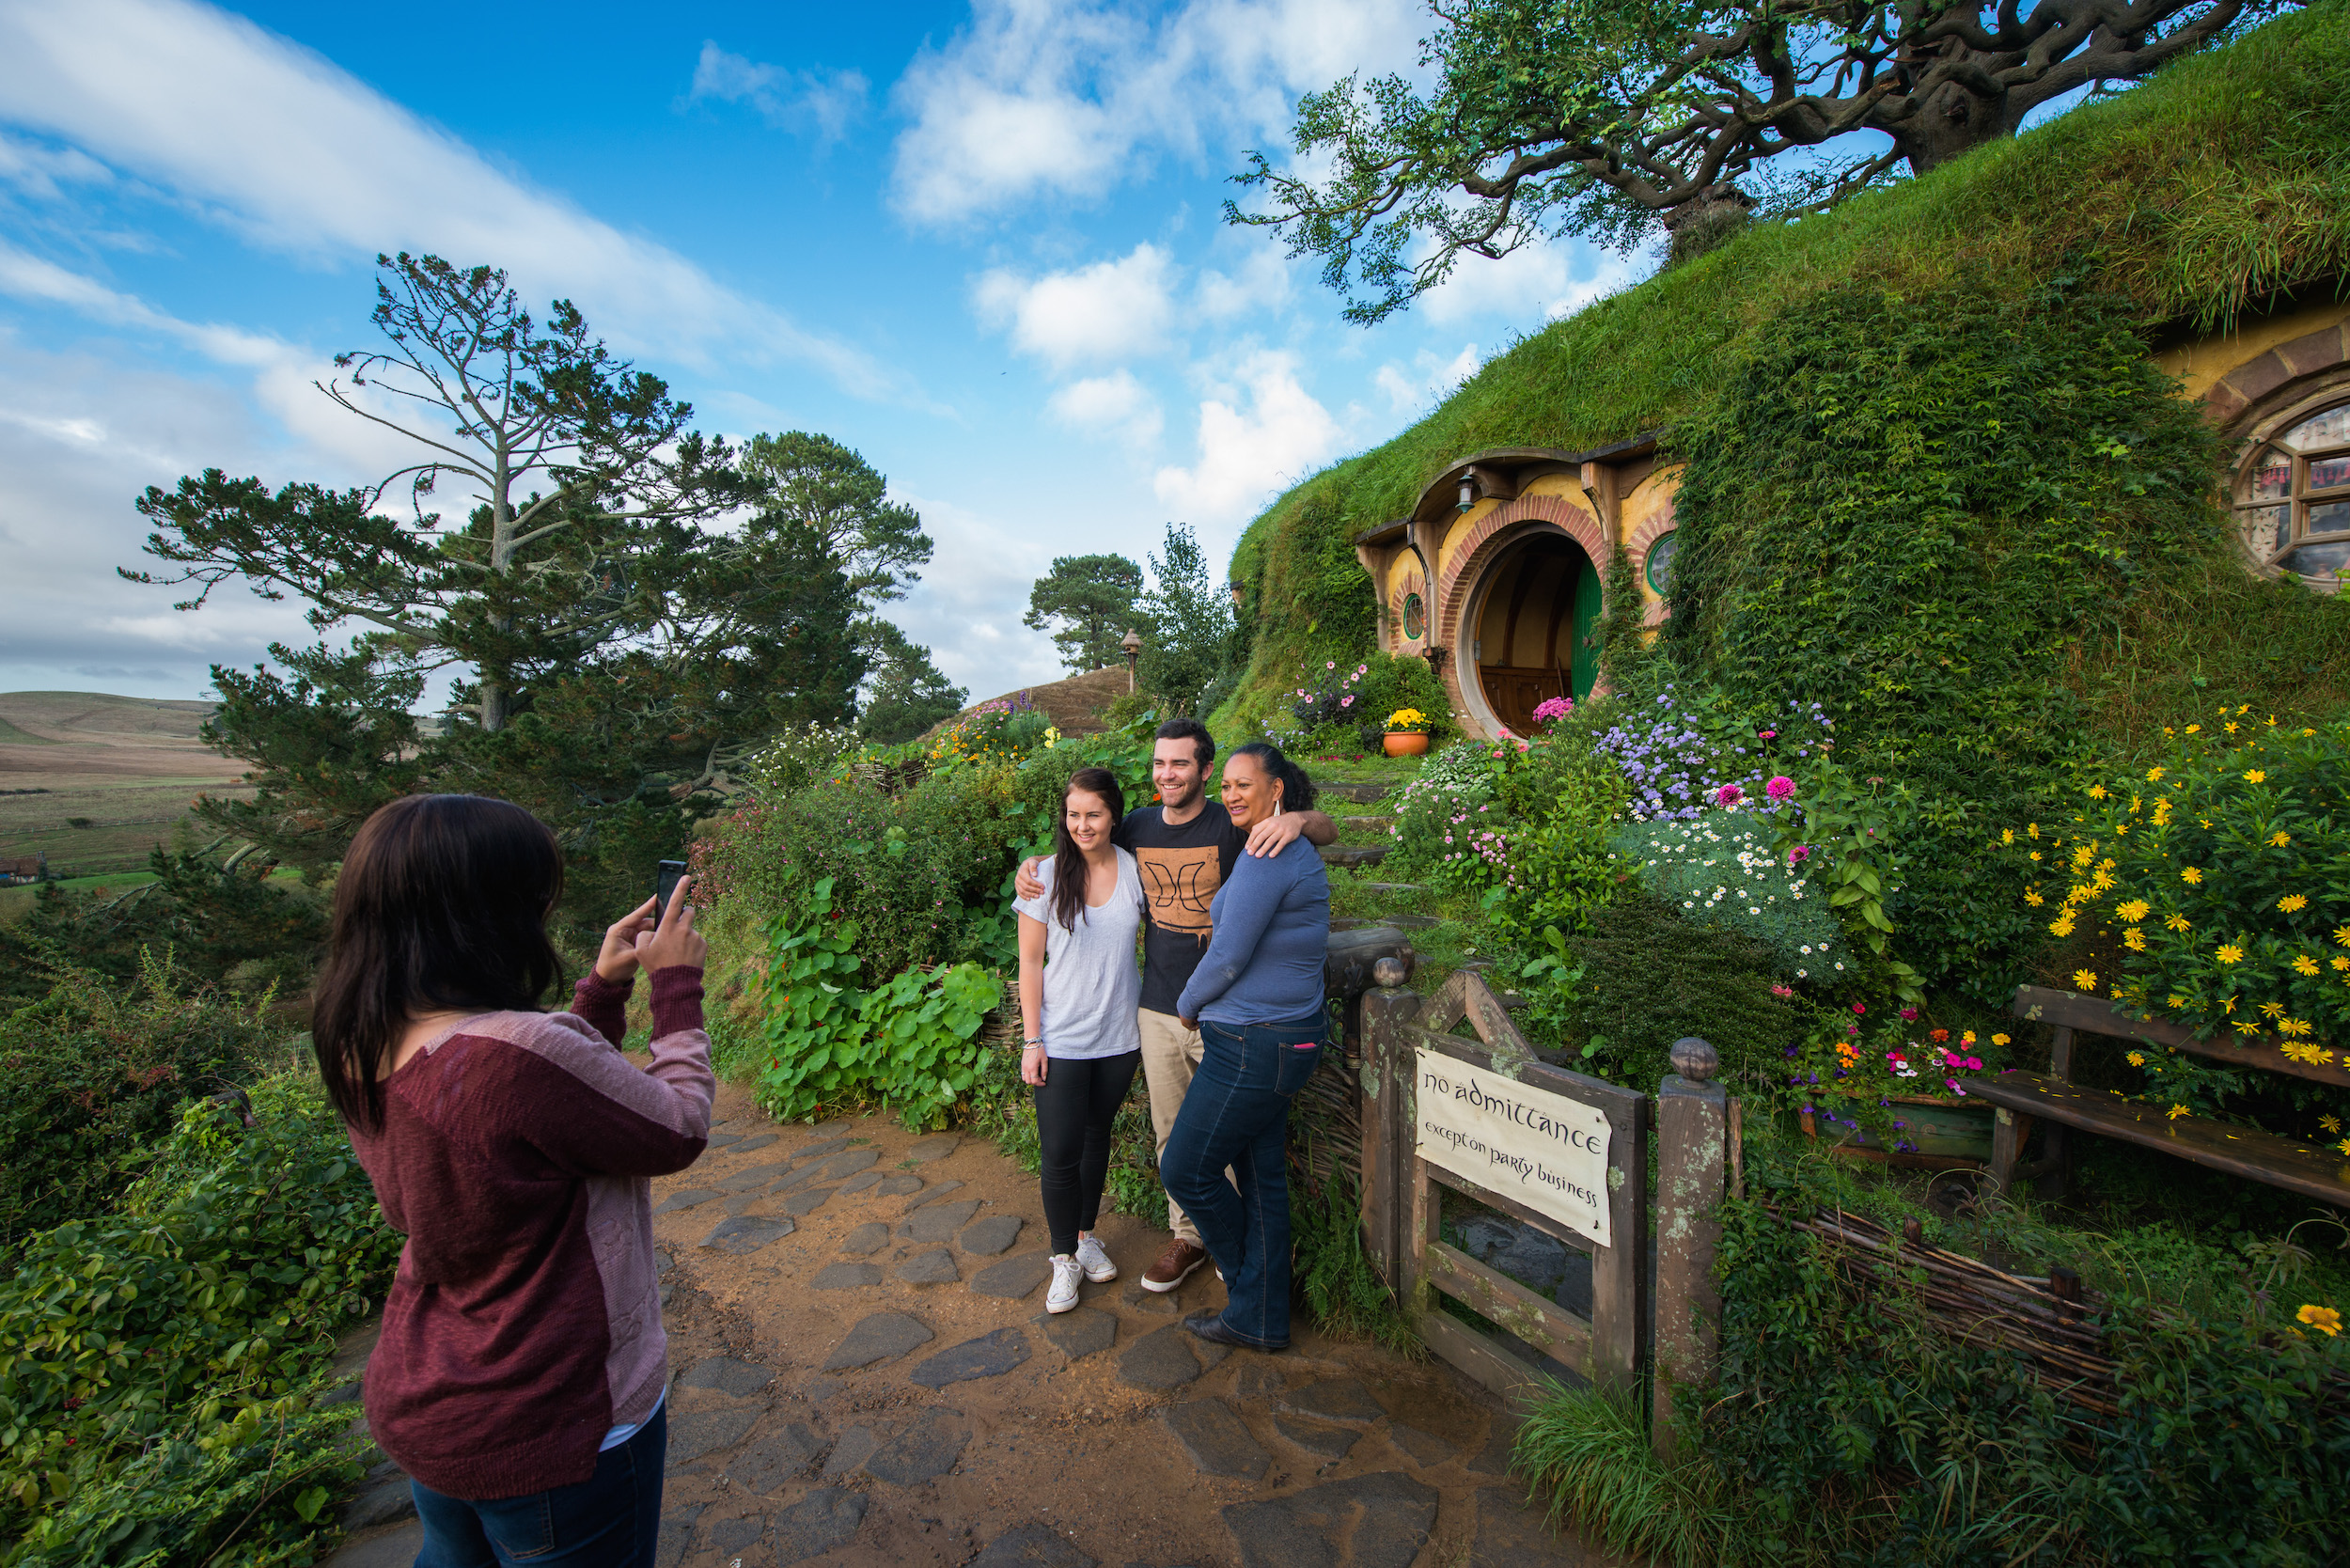 Hobbiton Movie Set Tour - From $158 NZD per person